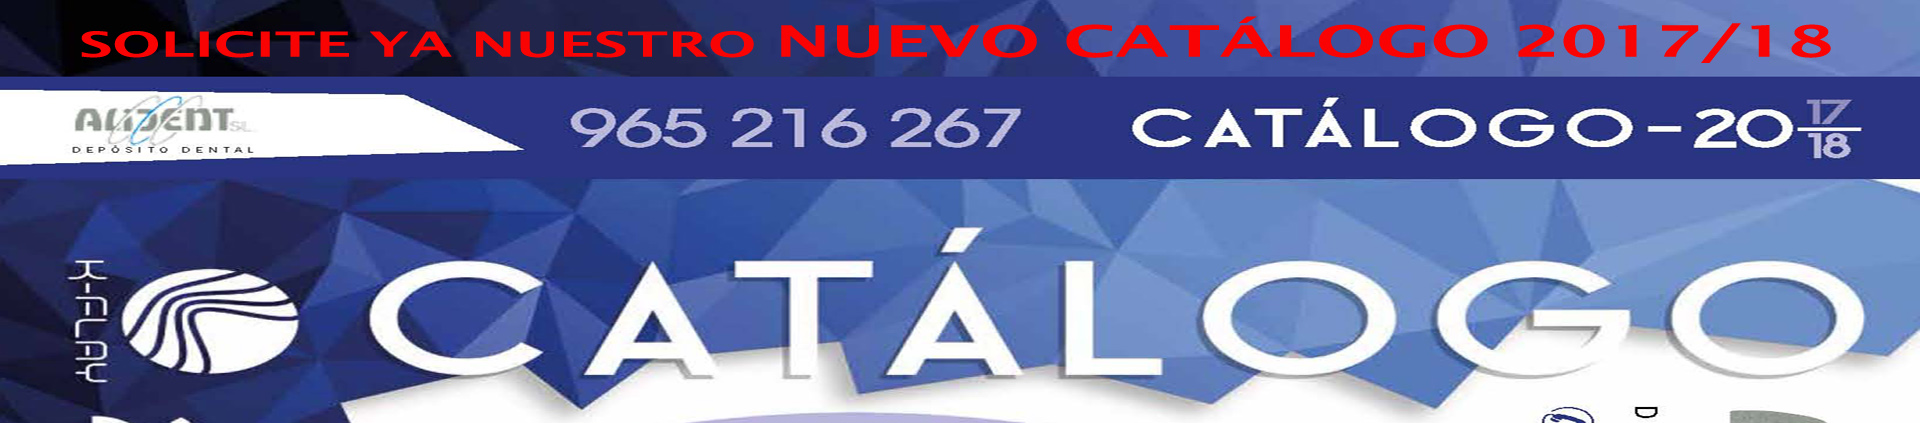 Alident Catalogo General 2017 2018